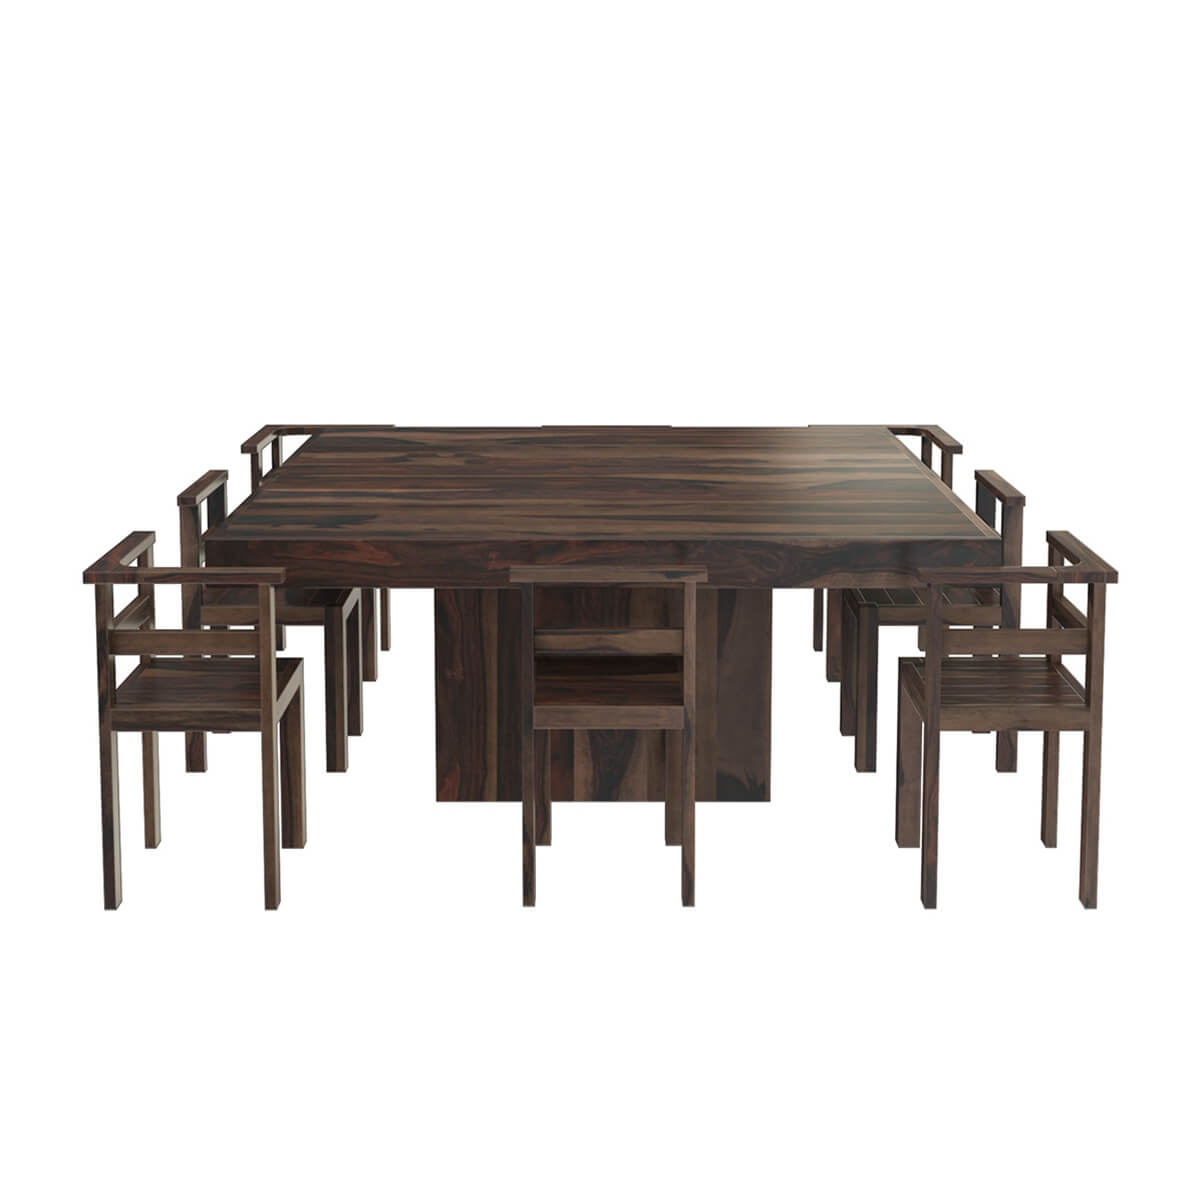 Modern rustic solid wood 64 square pedestal dining table for Pedestal dining table and chairs